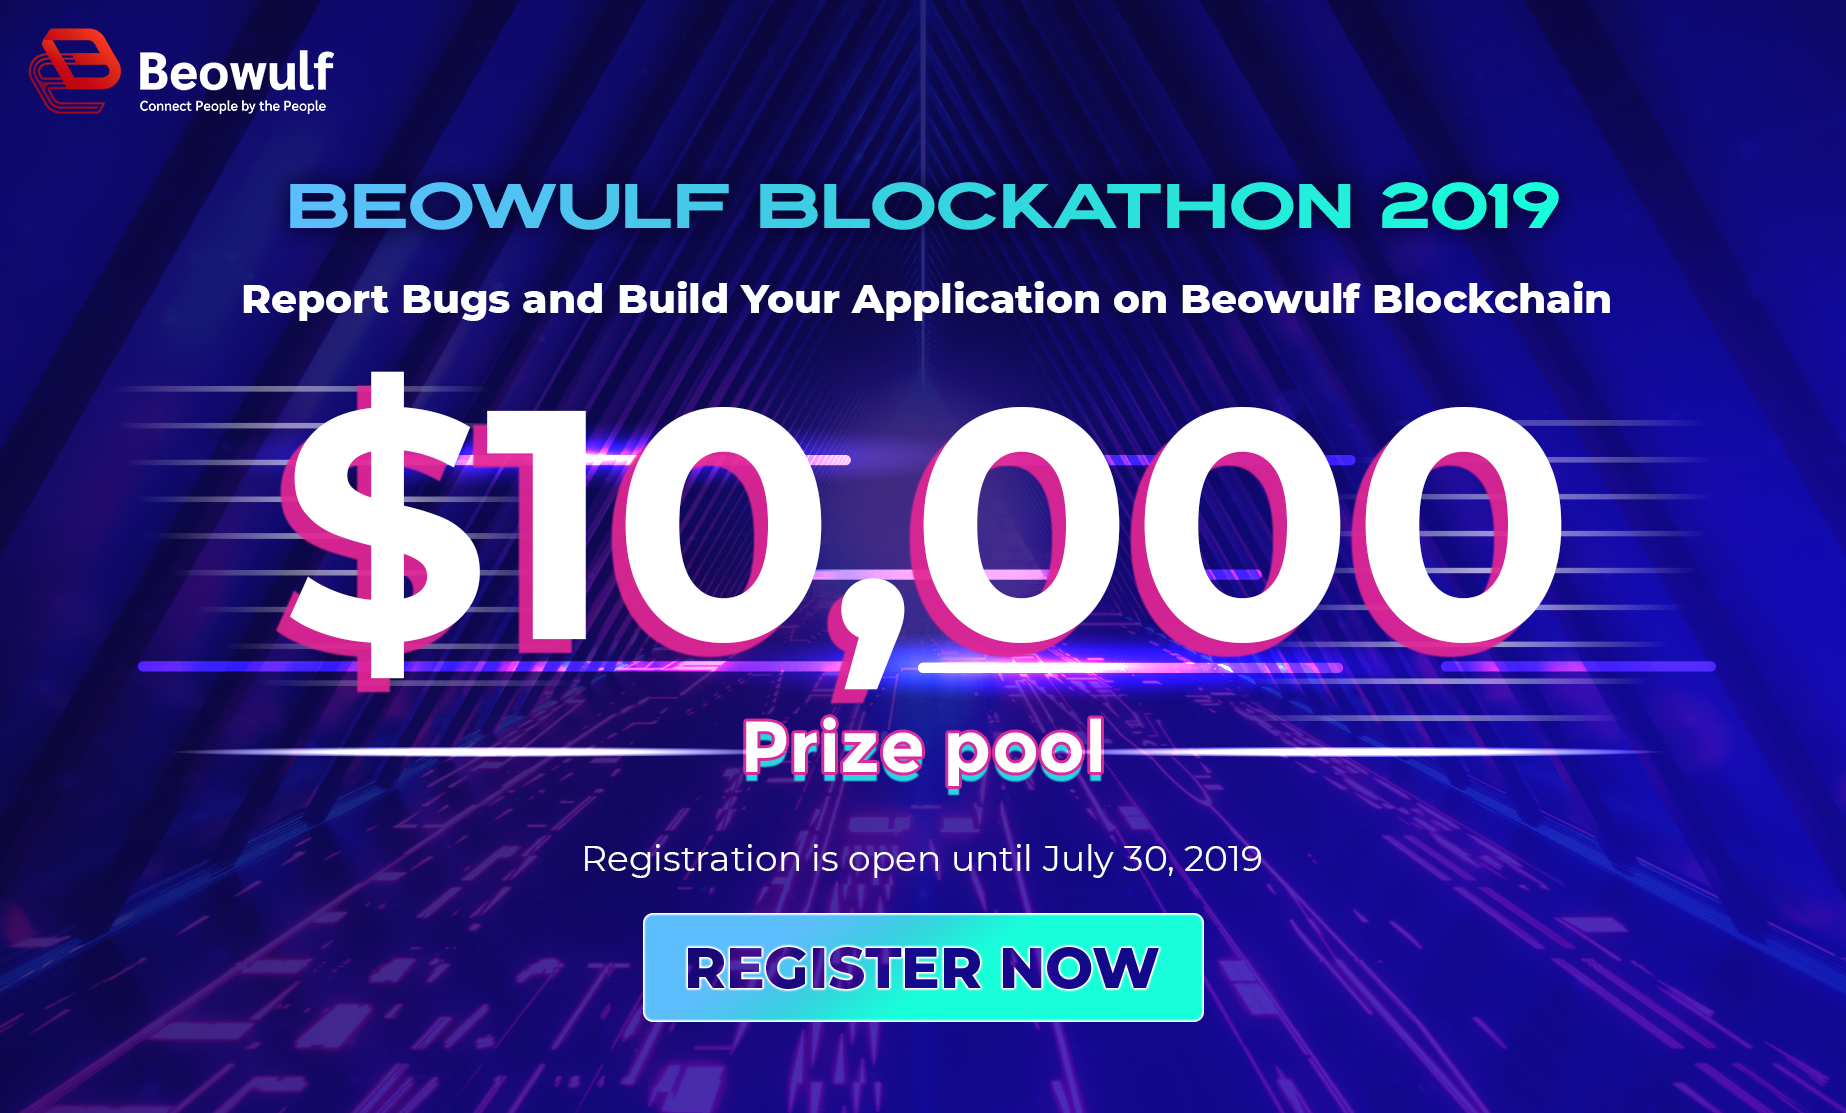 Hackathon Offers Developers $10,000 to Report Bugs on Beowulf Blockchain